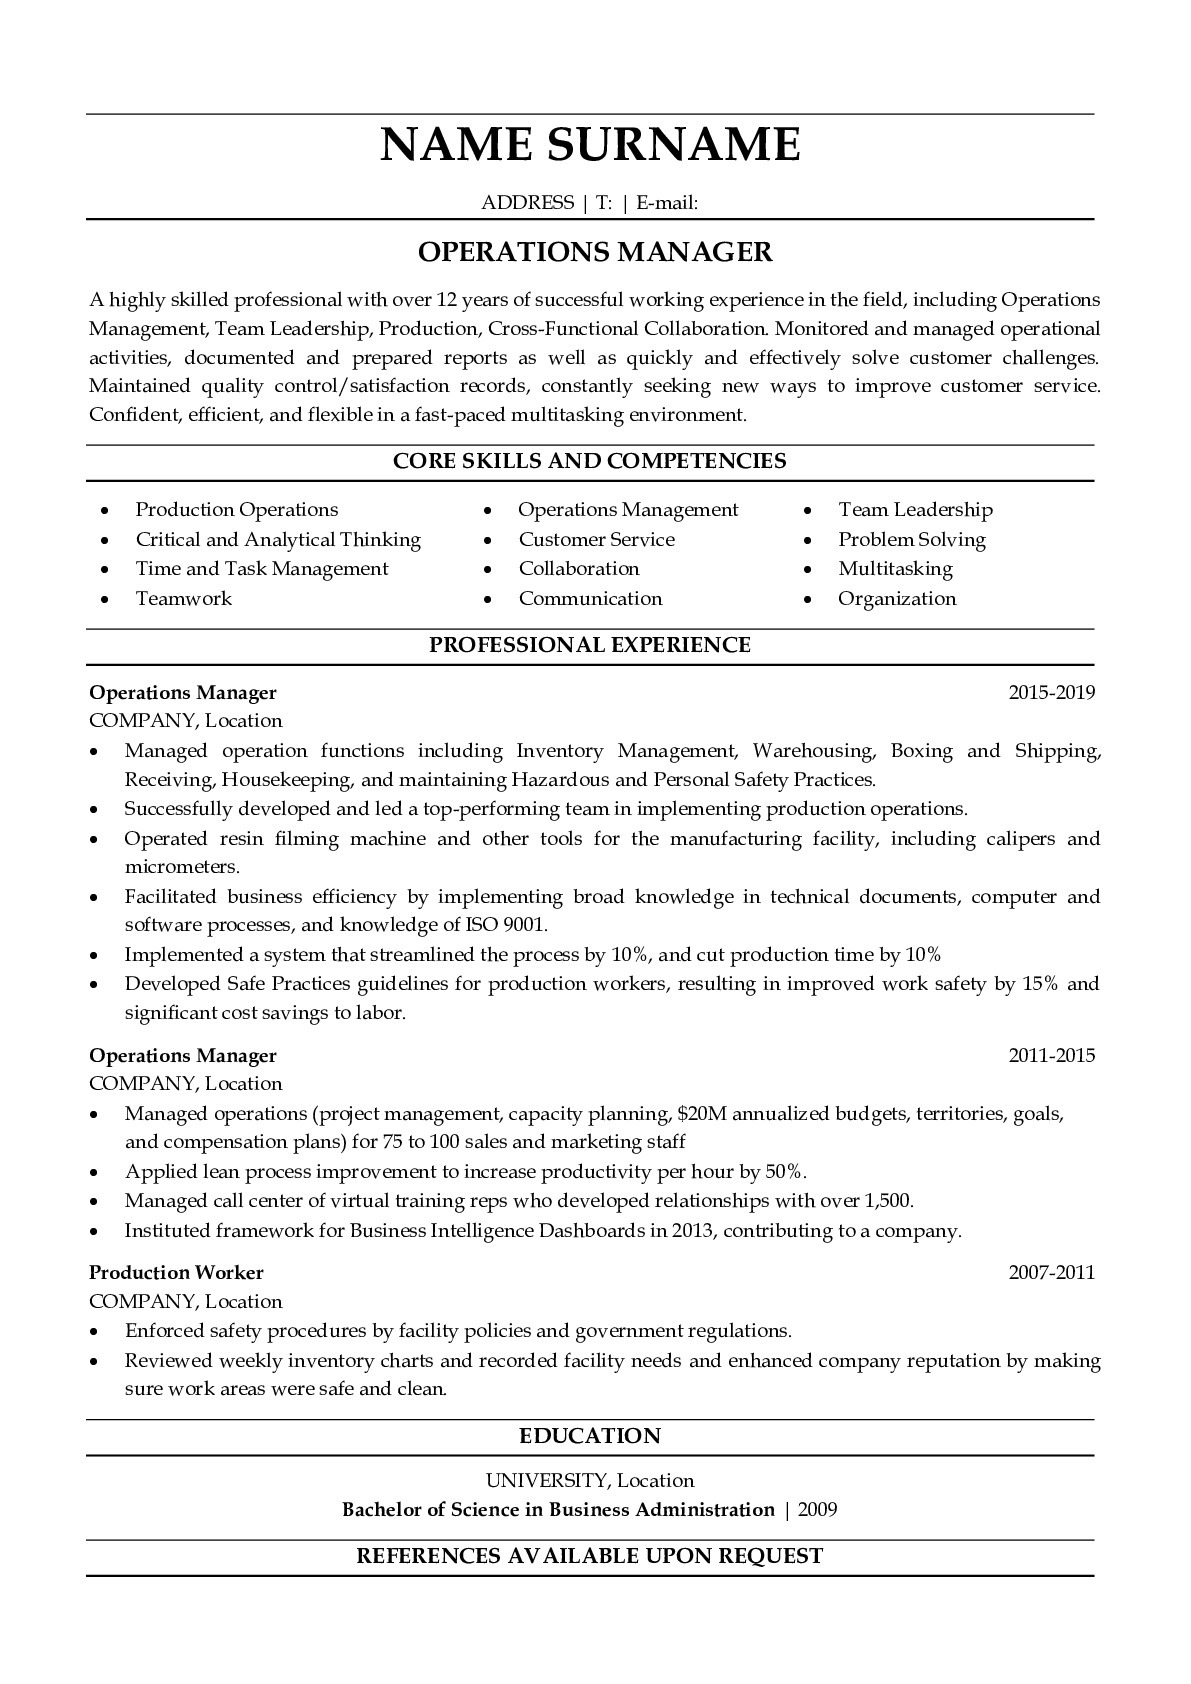 Resume Example for Operations Manager